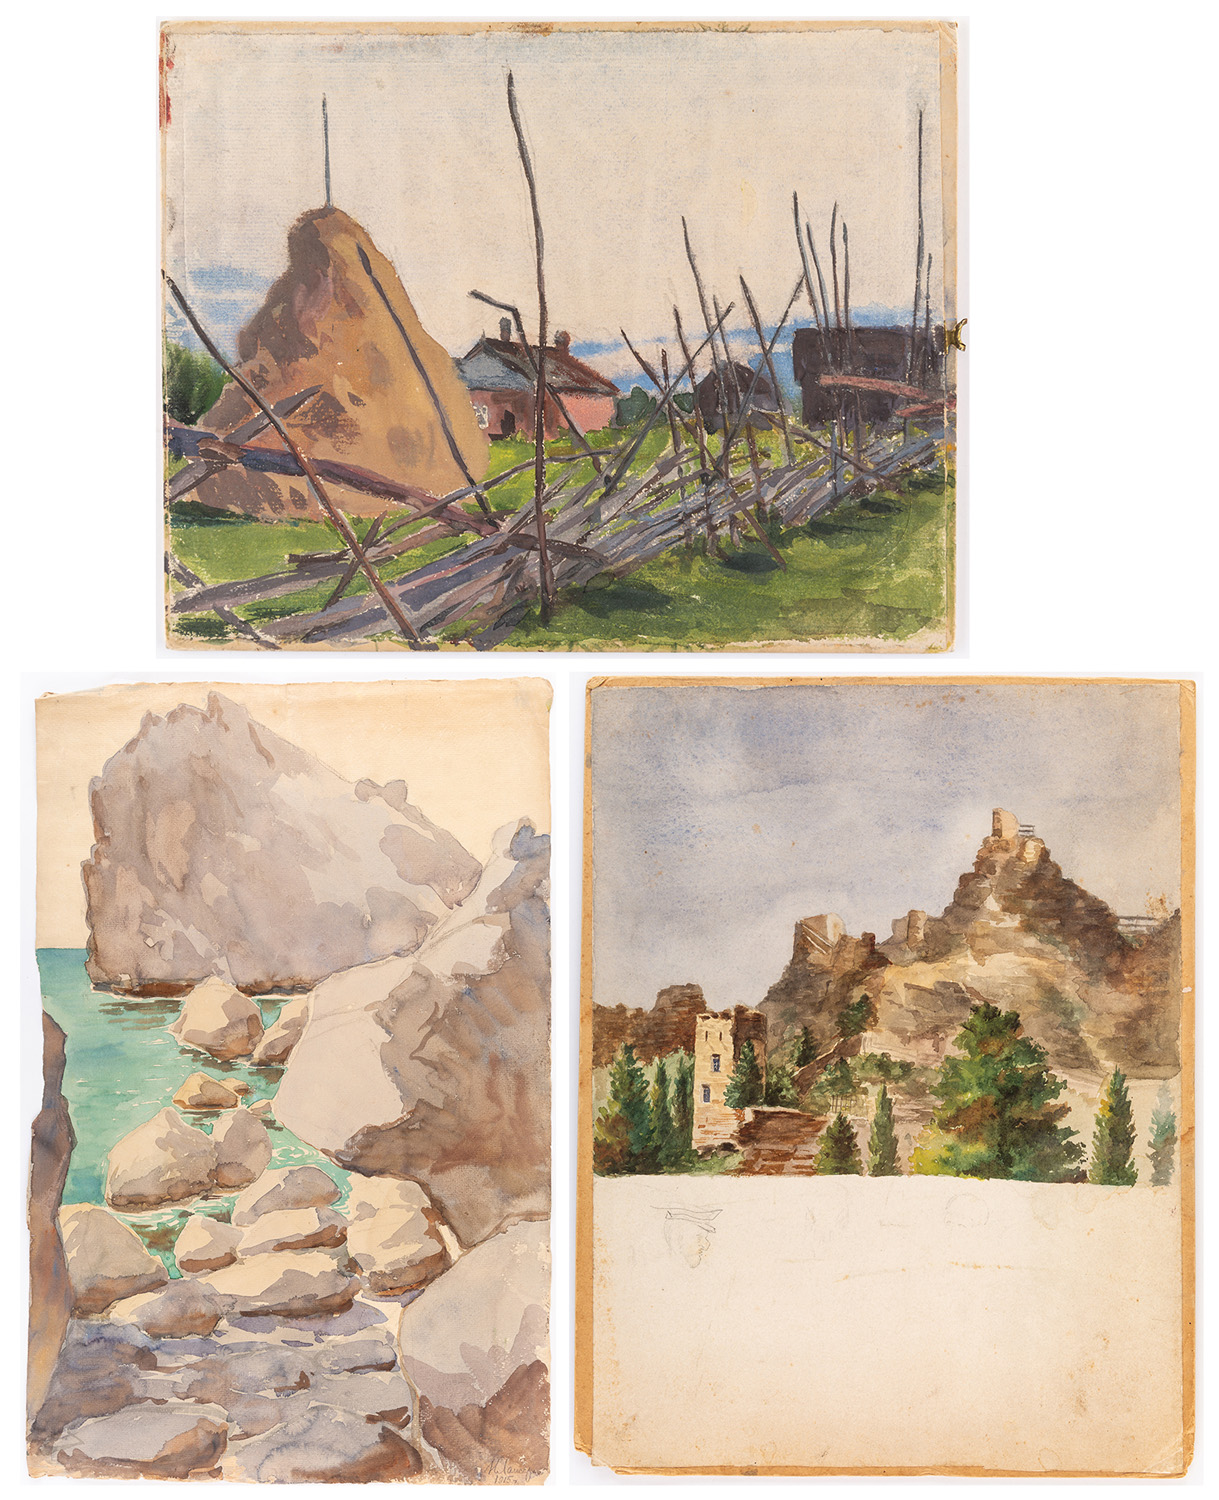 A GROUP OF THREE LANDSCAPE DRAWINGS BY NIKOLAI LANCERAY (RUSSIAN 1879-1942)